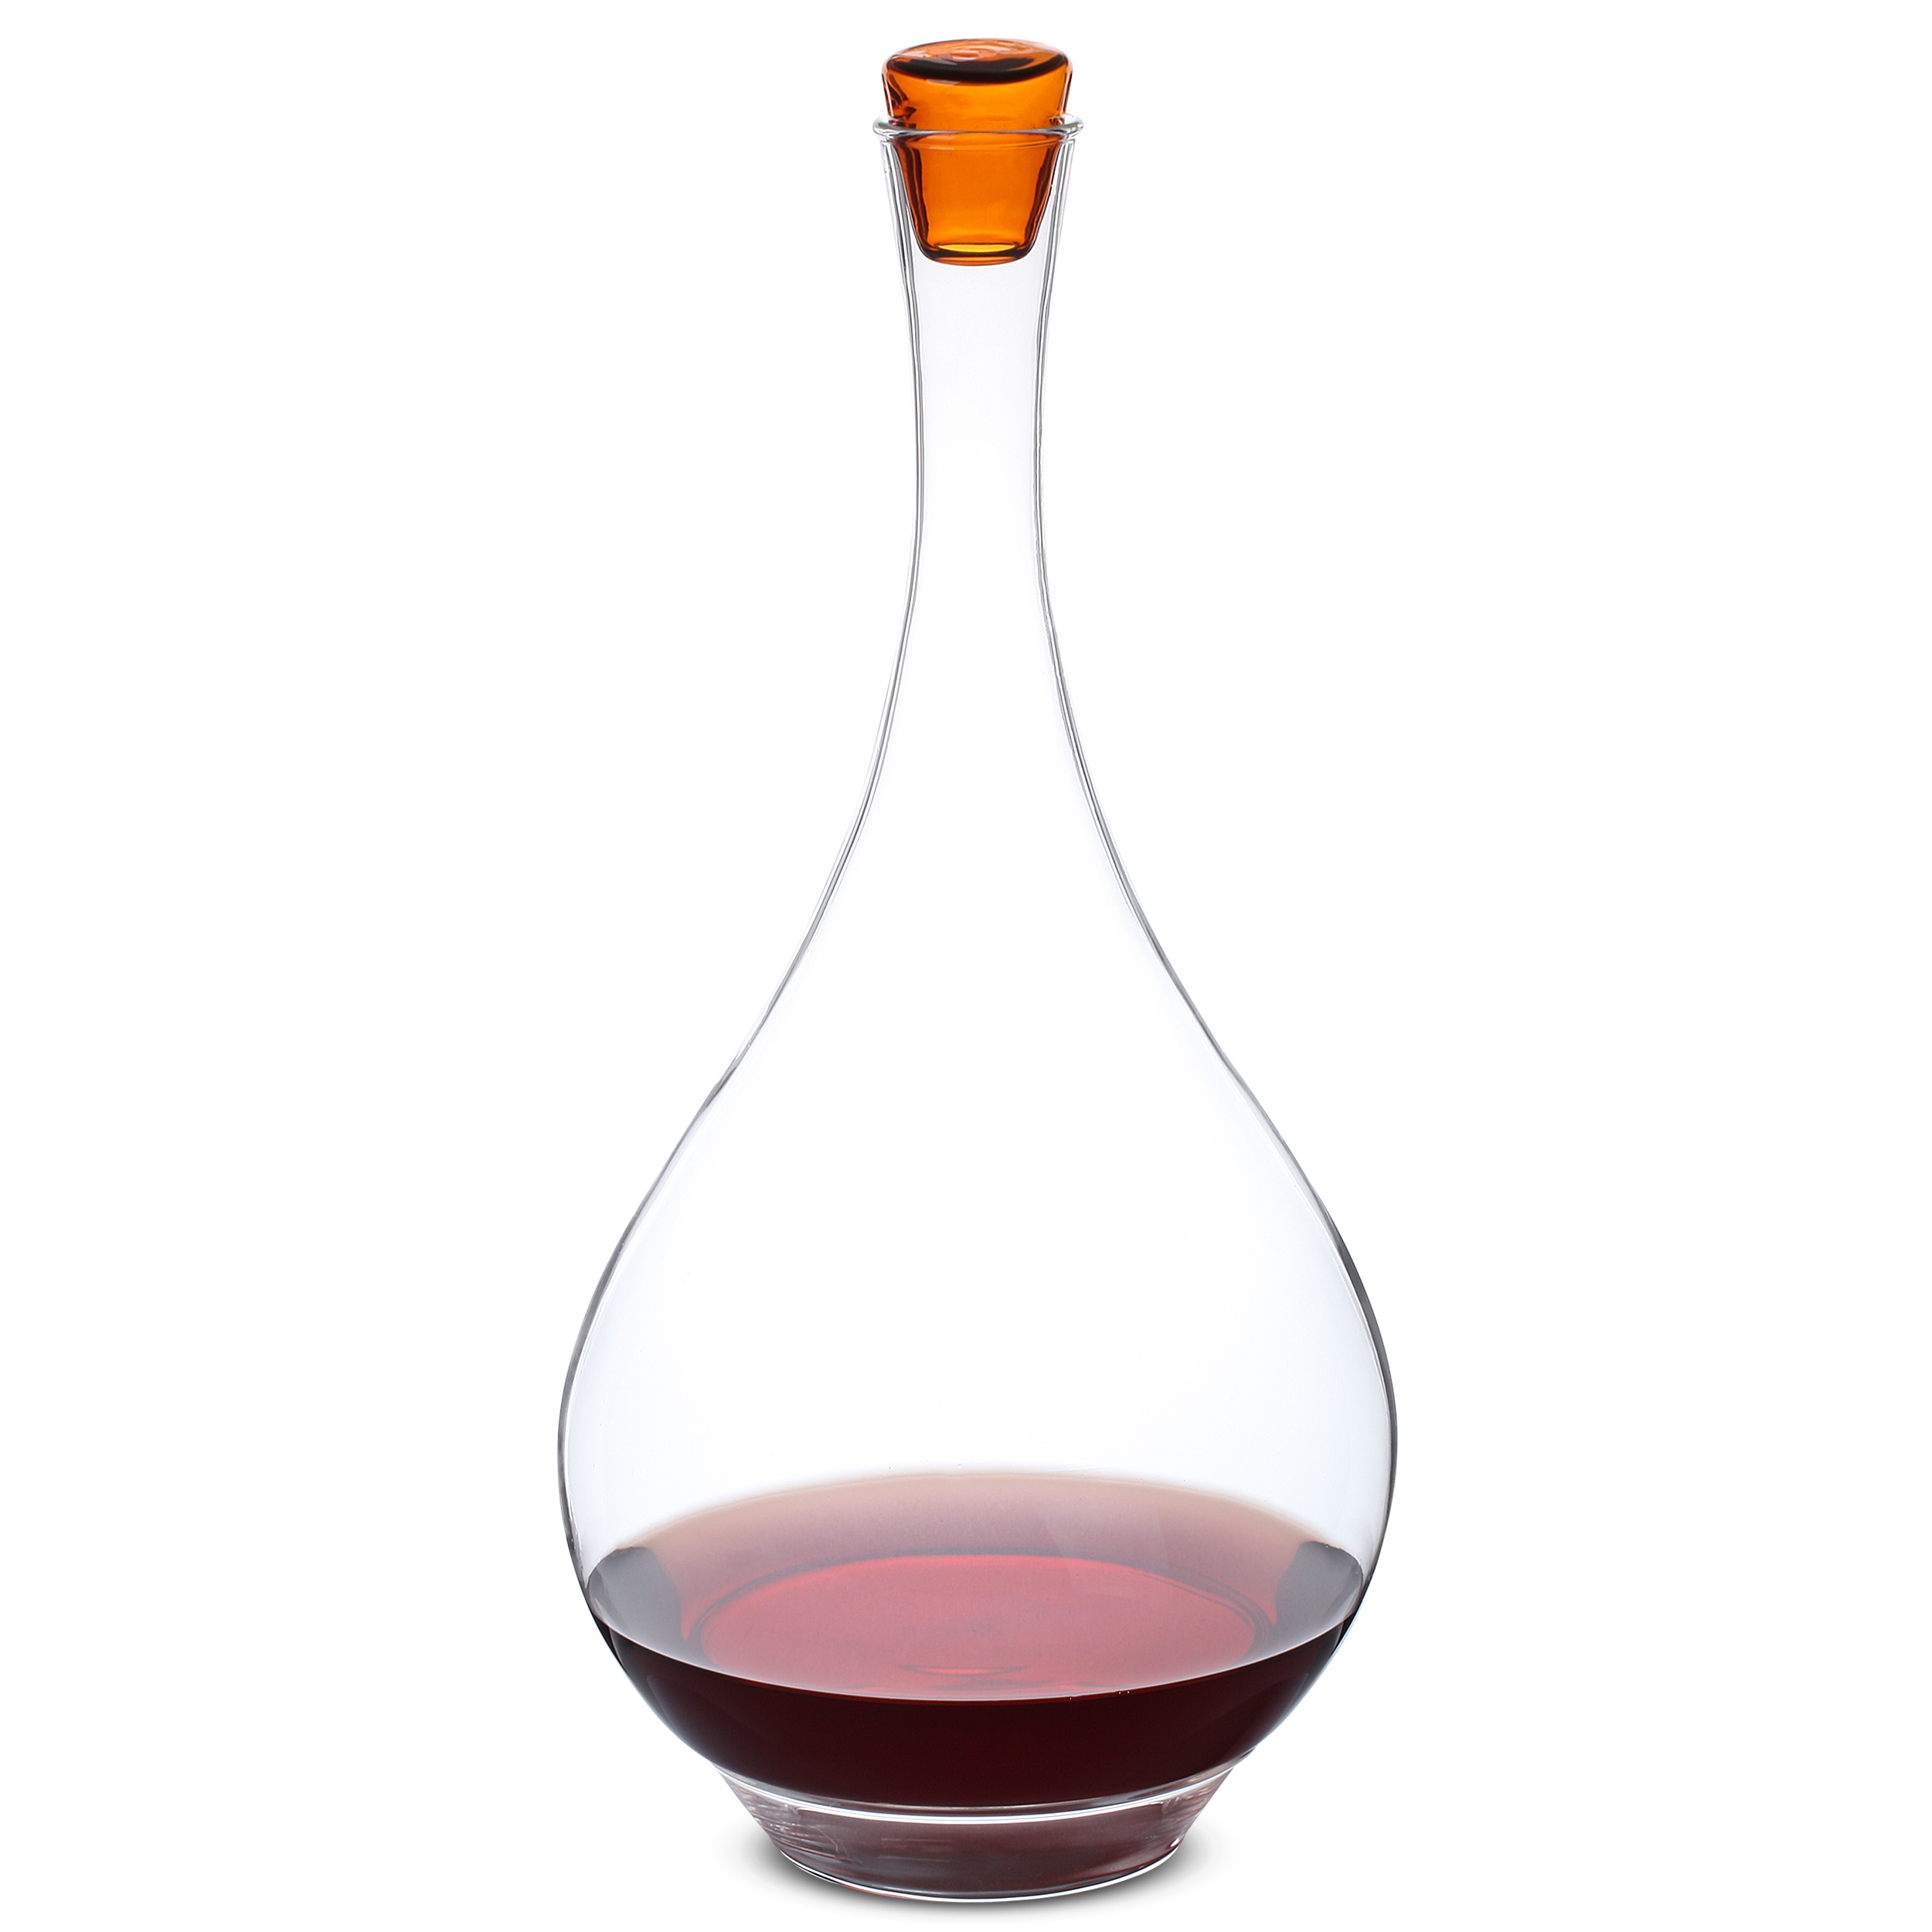 Btät Wine Decanter With Stopper Btat